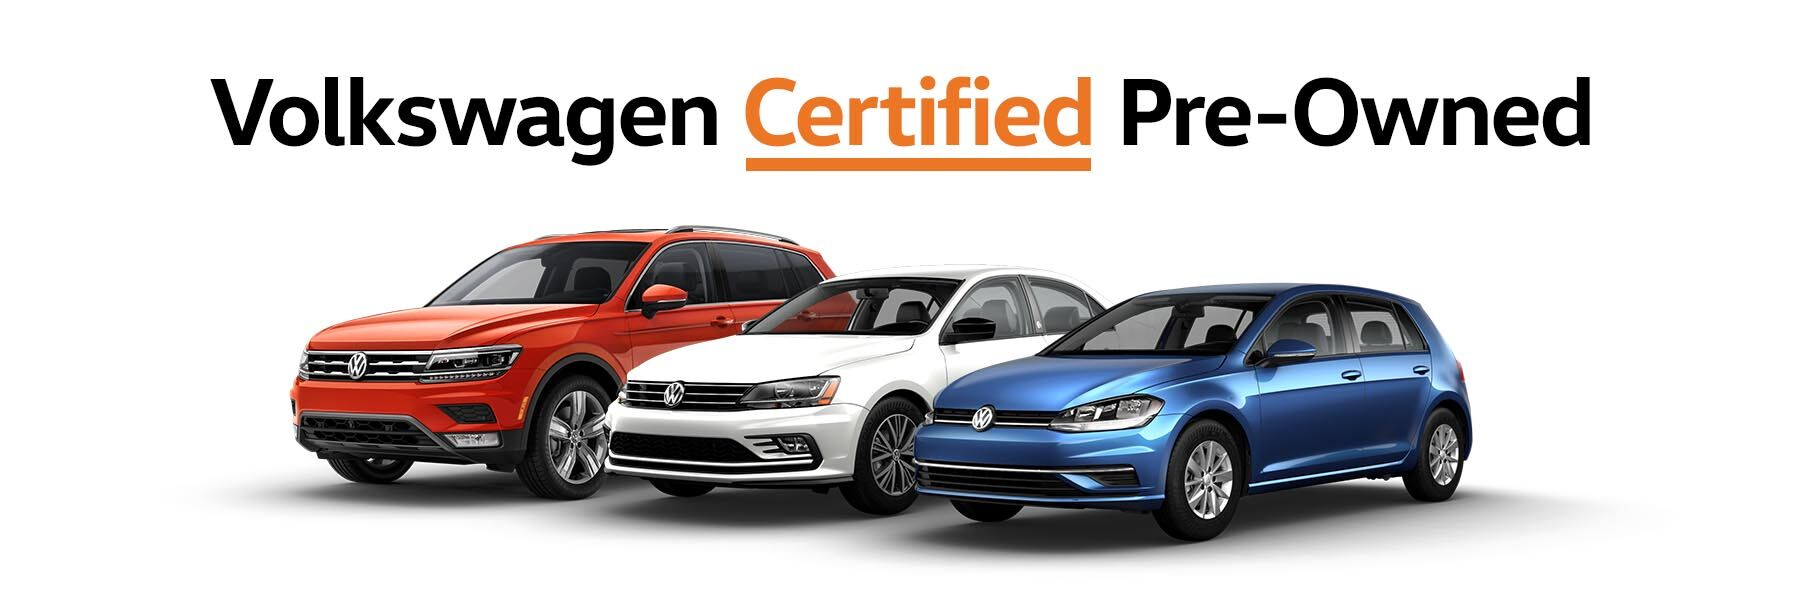 Volkswagen Certified Pre-Owned in South Jersey, NJ